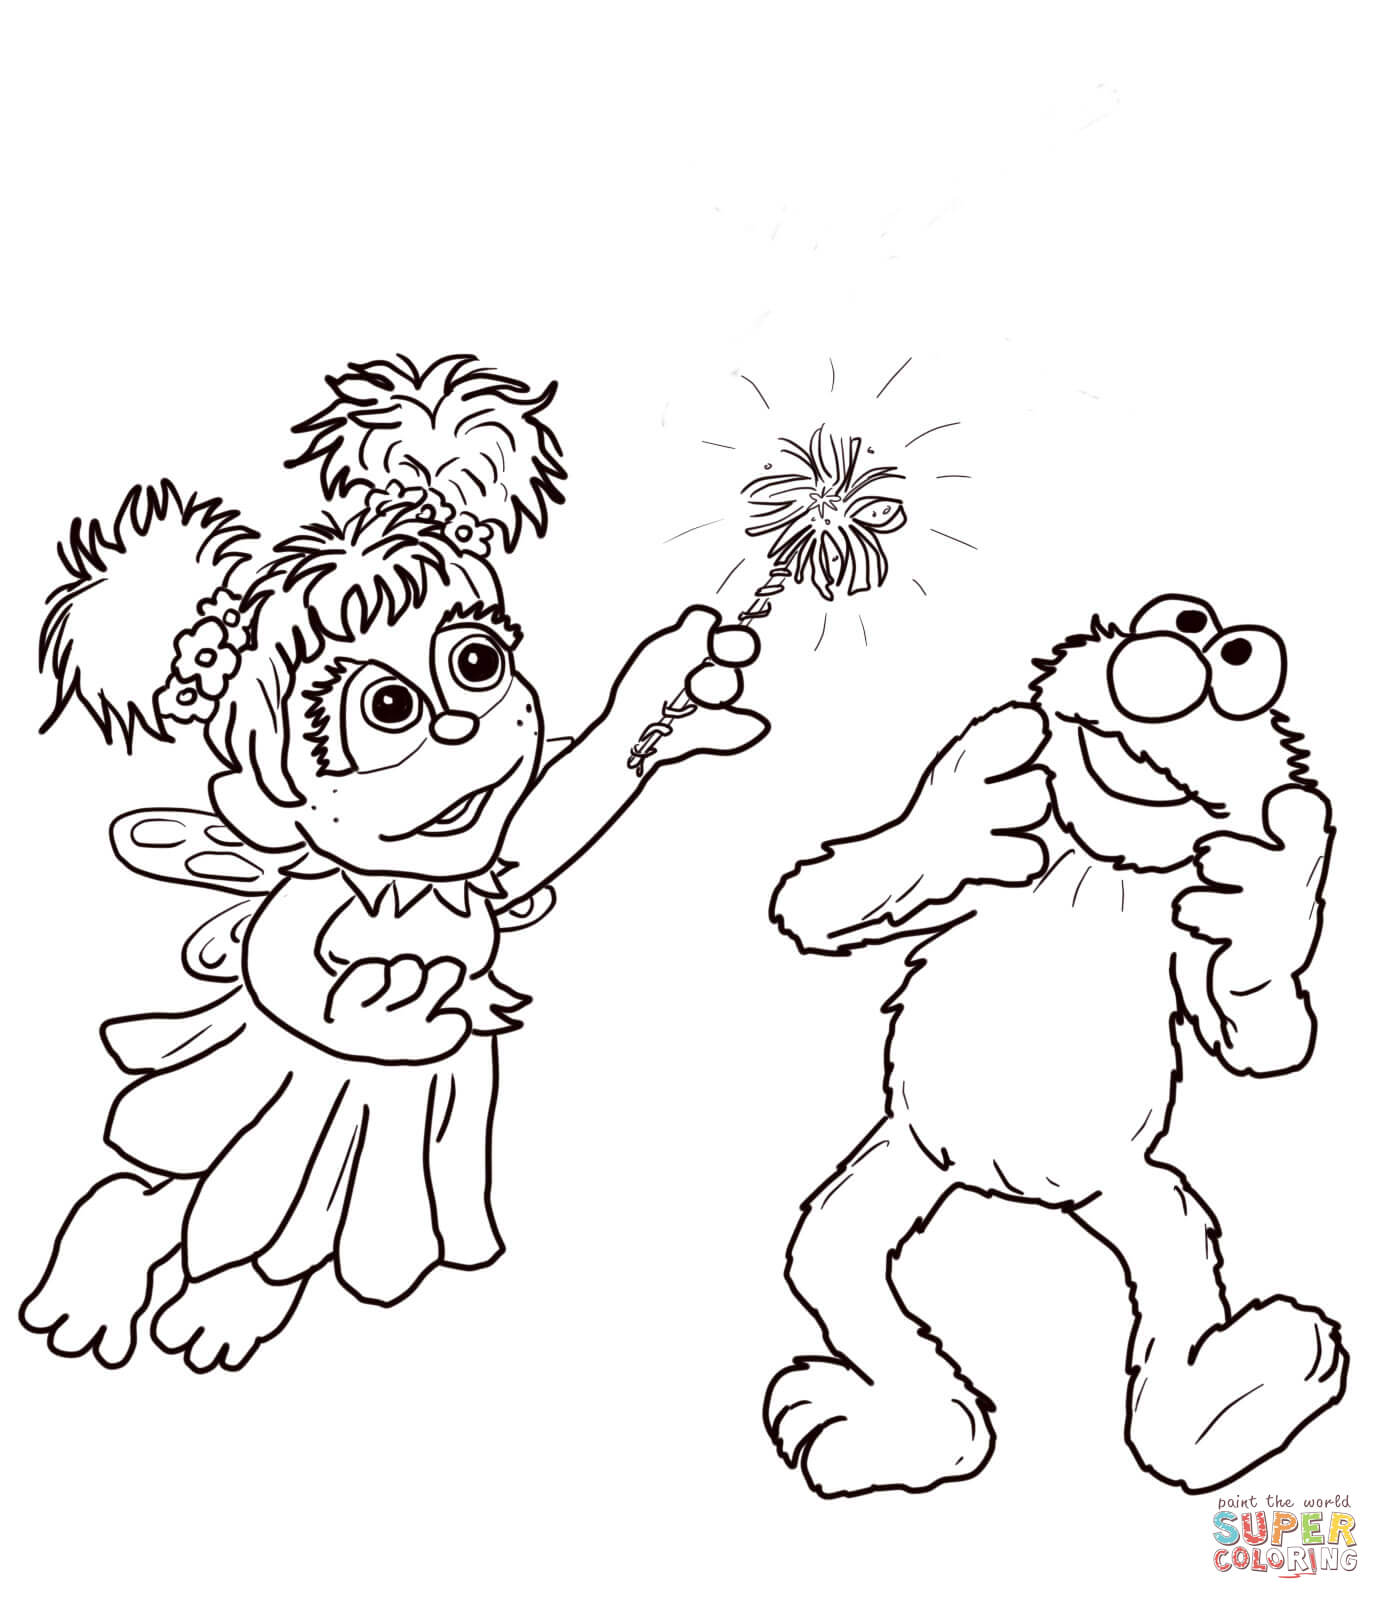 Best Elmo Coloring Pages Images Kids Children And Adult Coloring